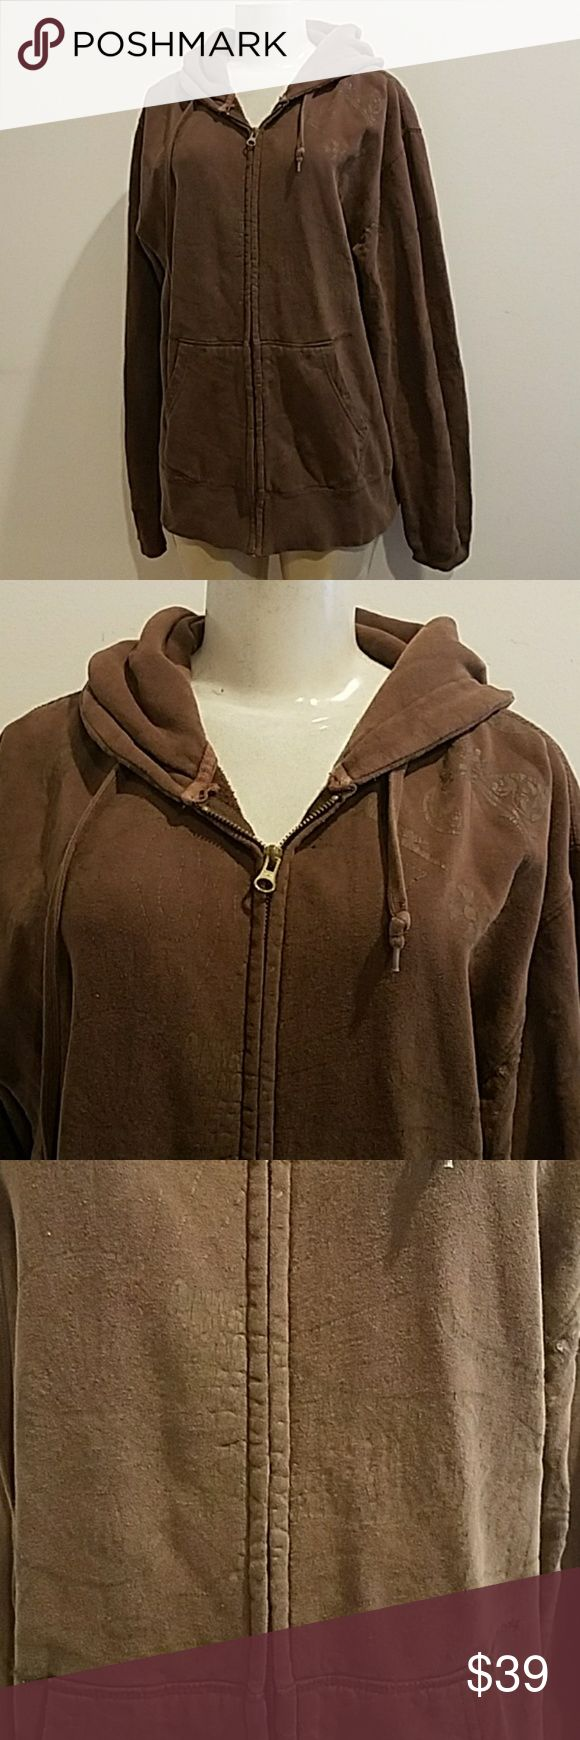 Men's OBEY Brown Zip Up Hoodie Sweater size XL Great condition Obey Sweaters Zip Up